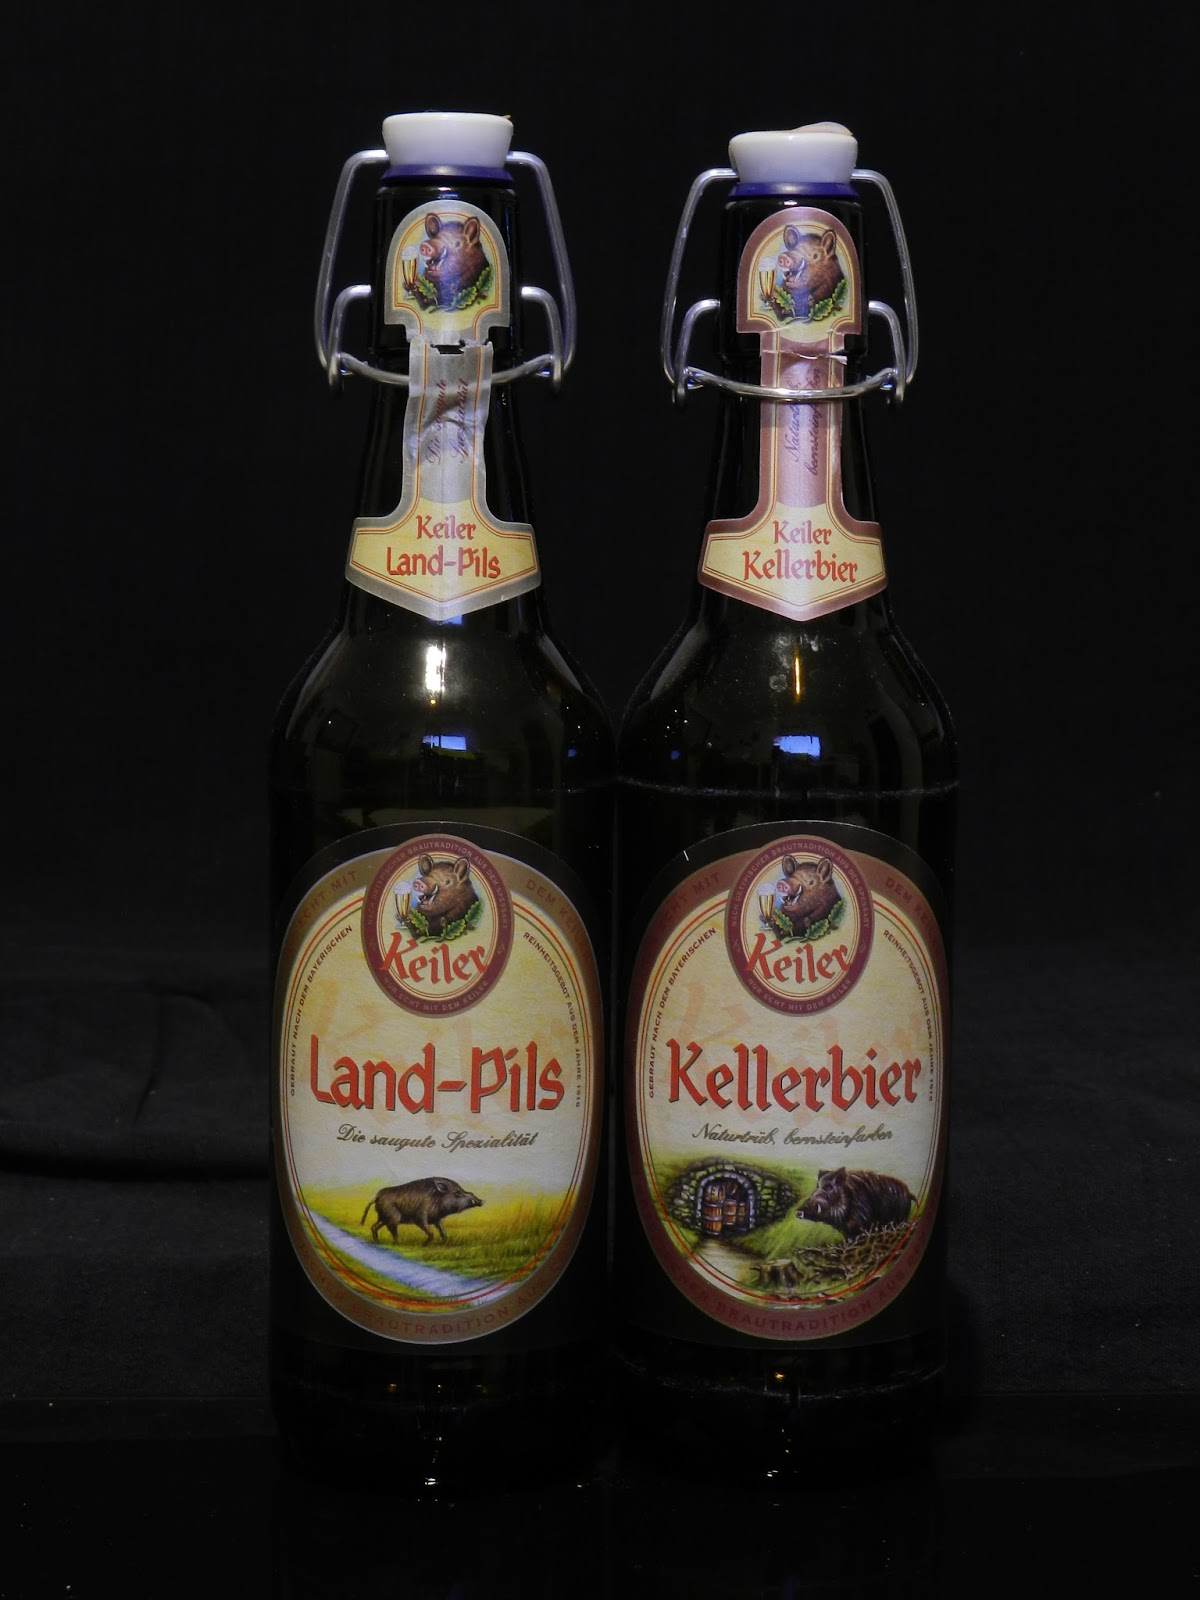 the beer bottles collector keiler land pils keller beer in a